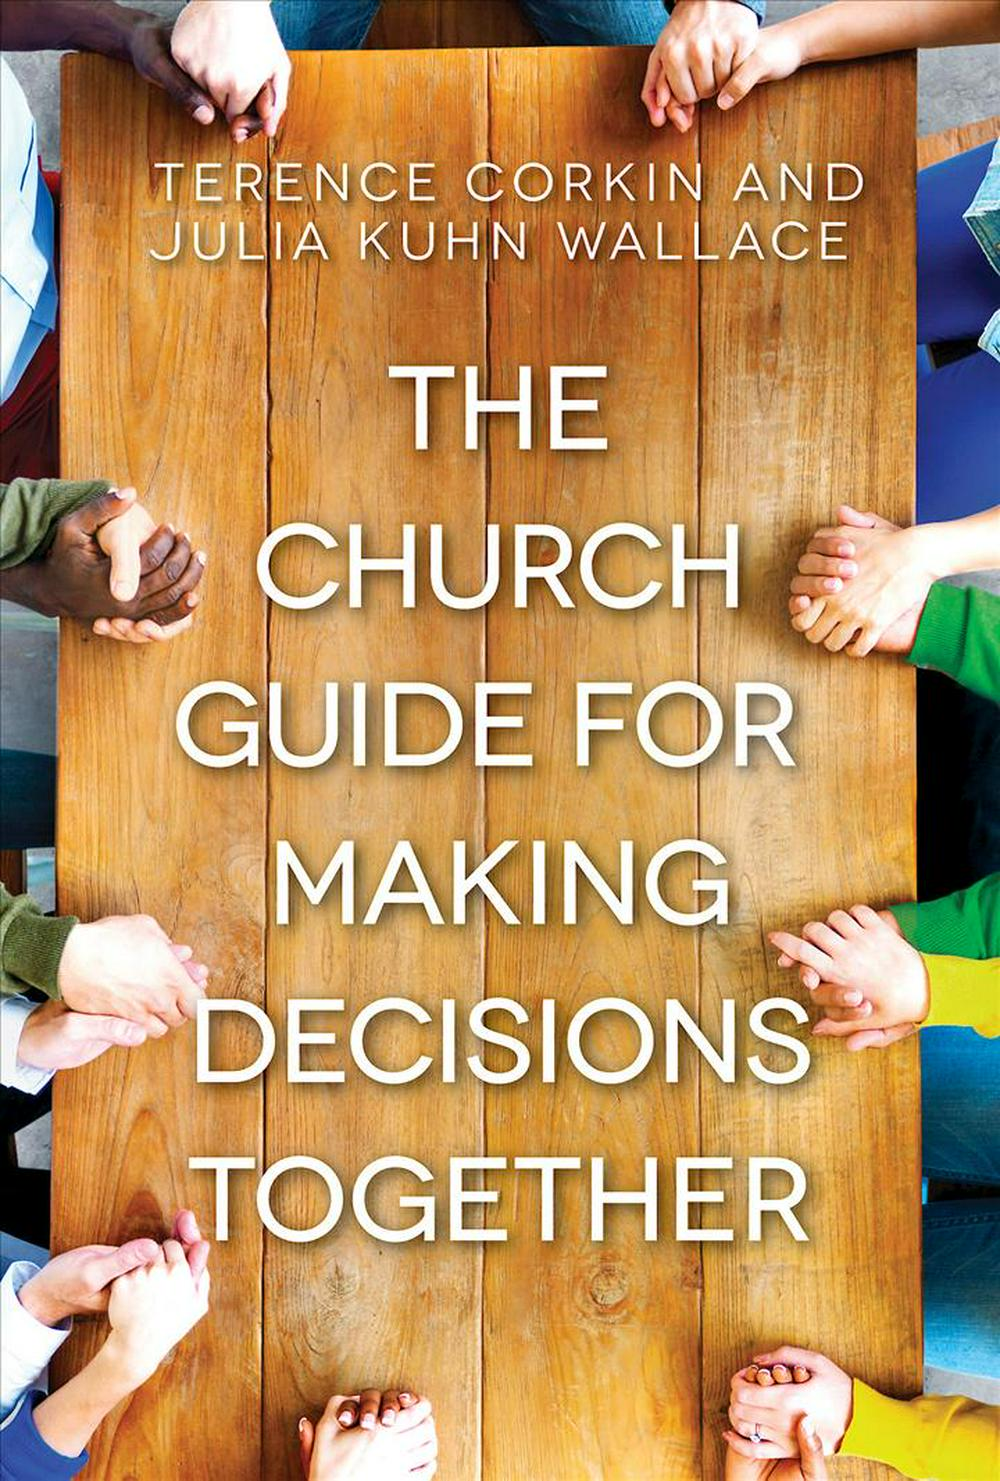 The Church Guide for Making Decisions Together